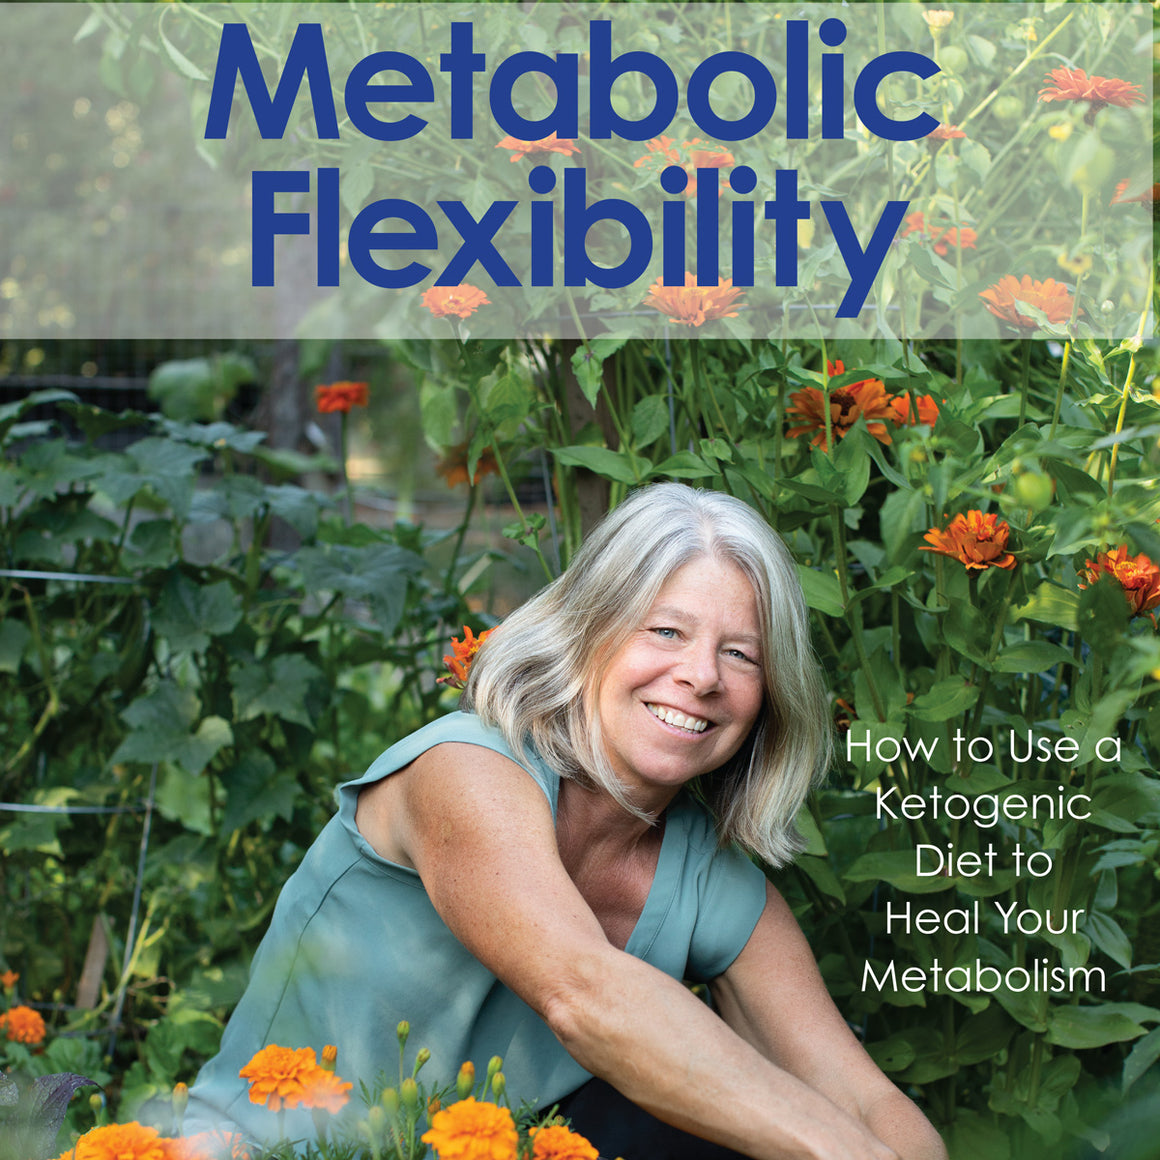 Metabolic Flexibility, How to Heal Your Metabolism With a Ketogenic Diet